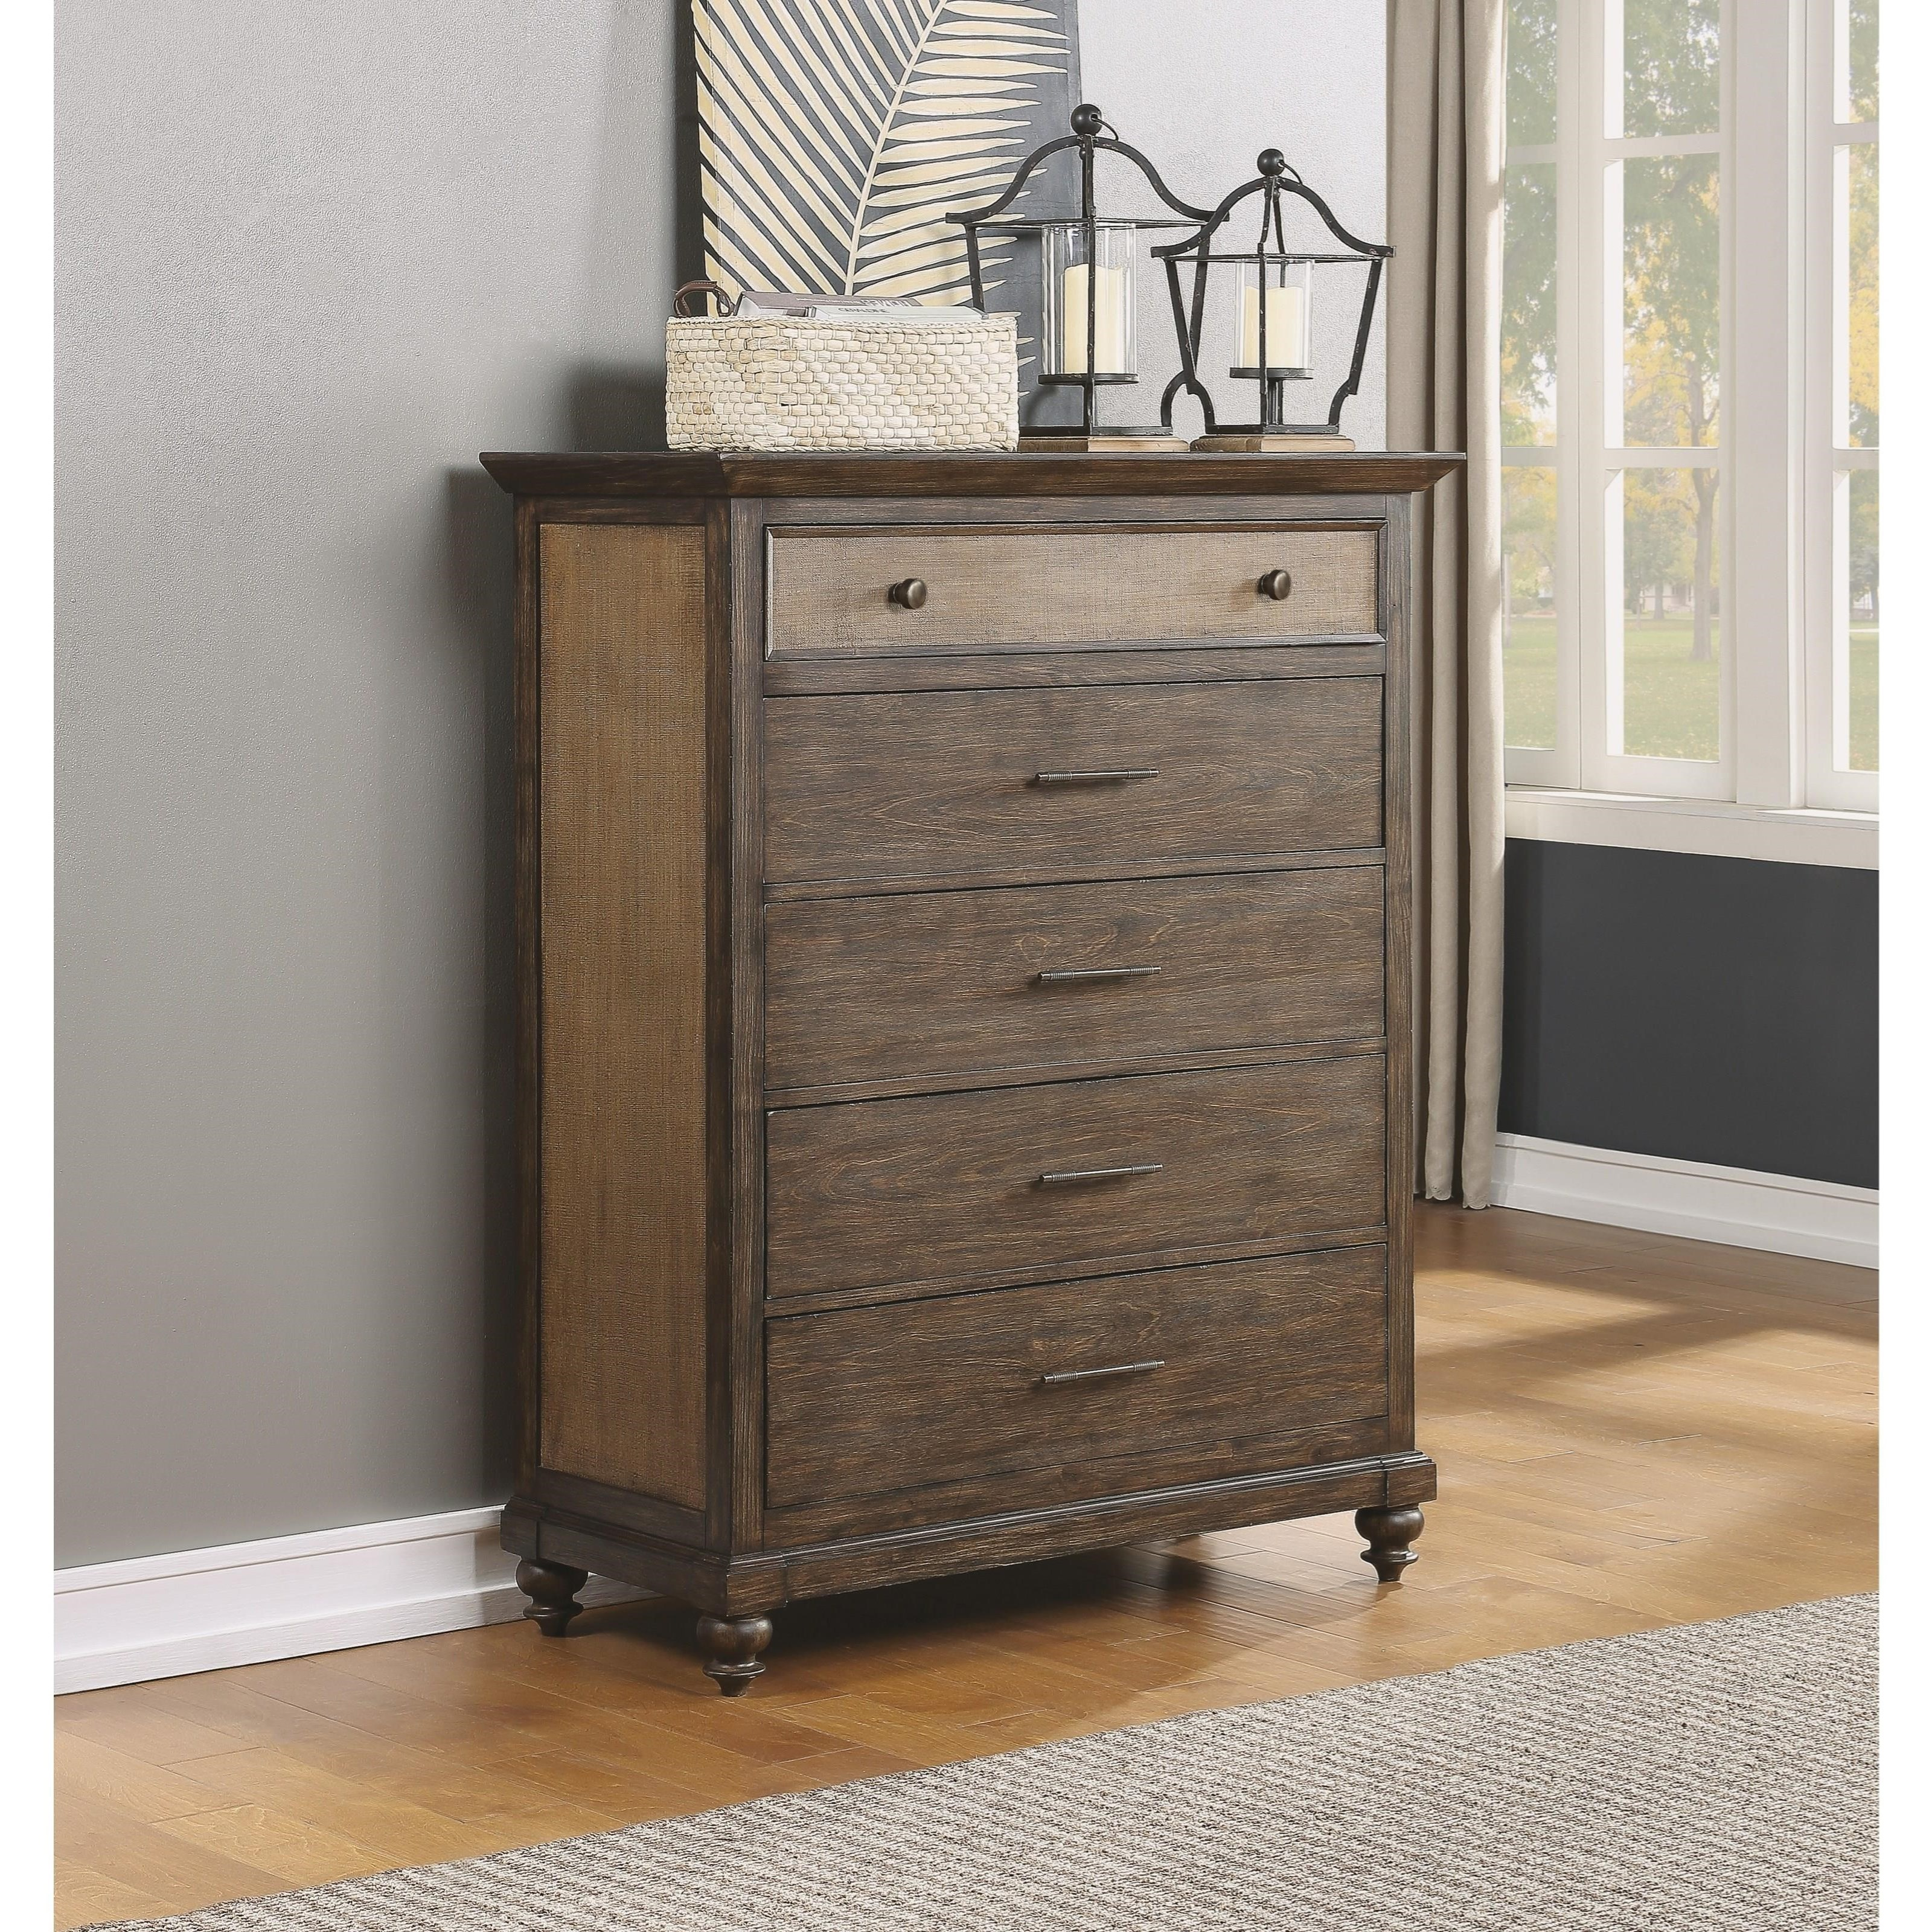 Wakefield Drawer Chest  by Flexsteel Wynwood Collection at Furniture Superstore - Rochester, MN